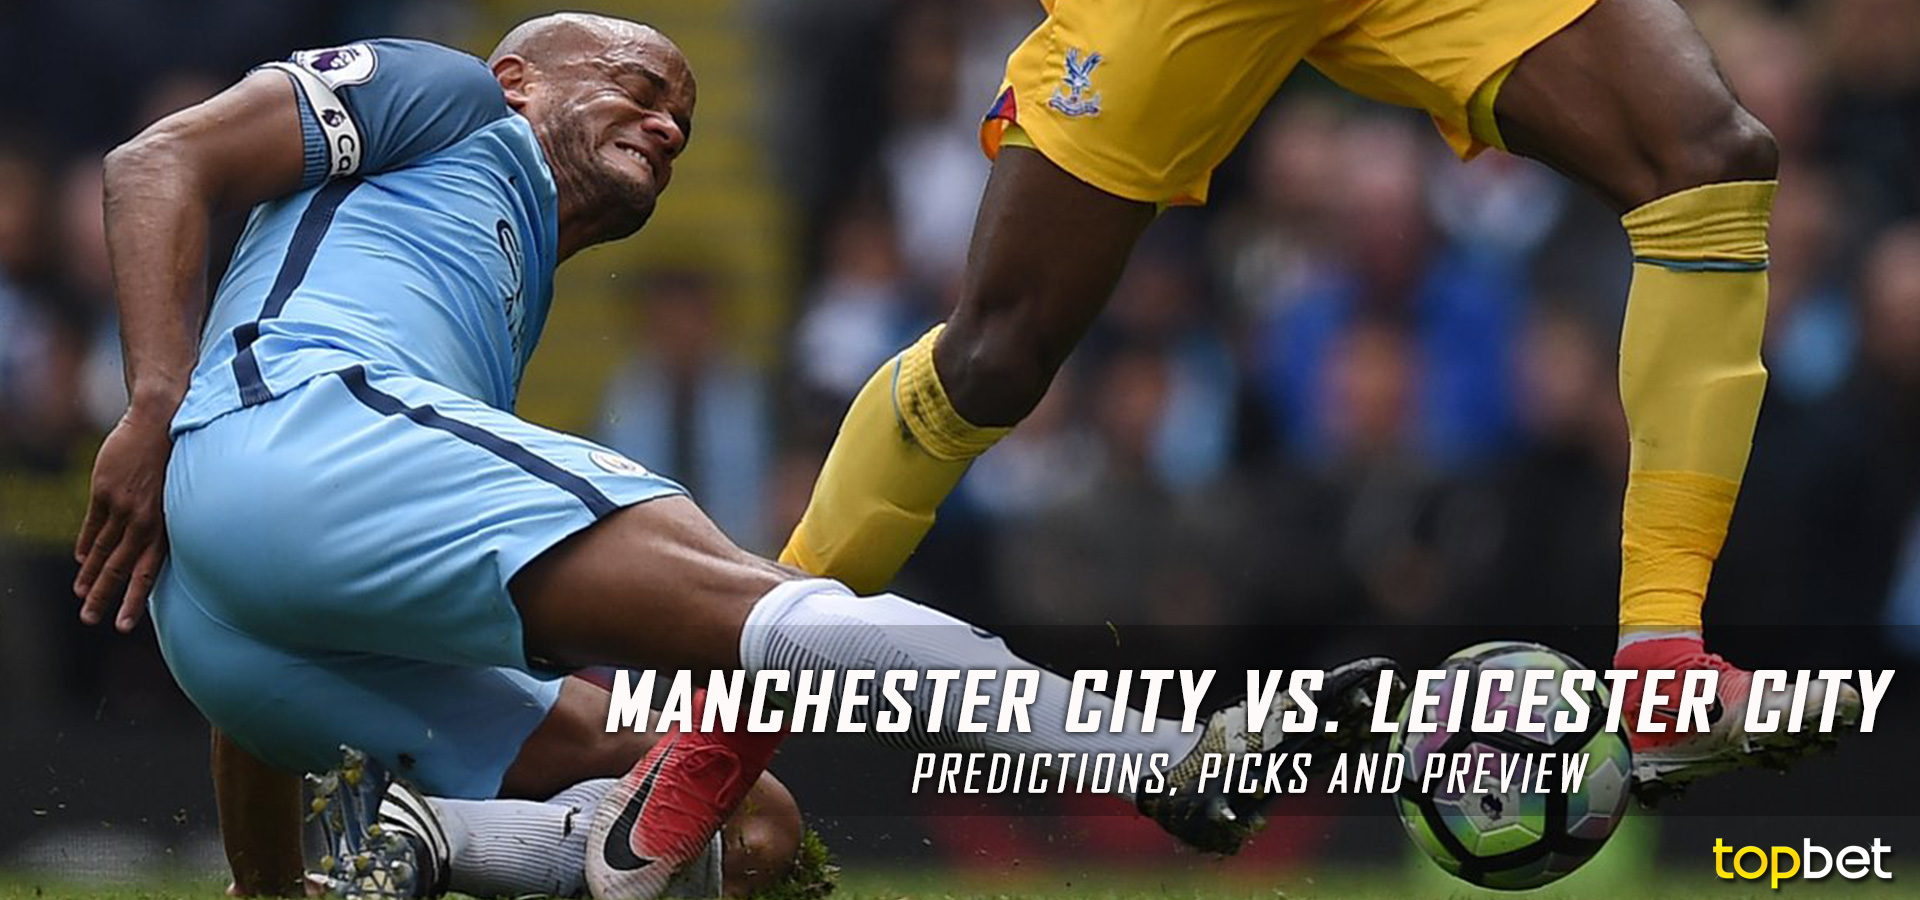 Barcelona Vs Manchester City Logo: Manchester City Vs Leicester City Predictions And Preview